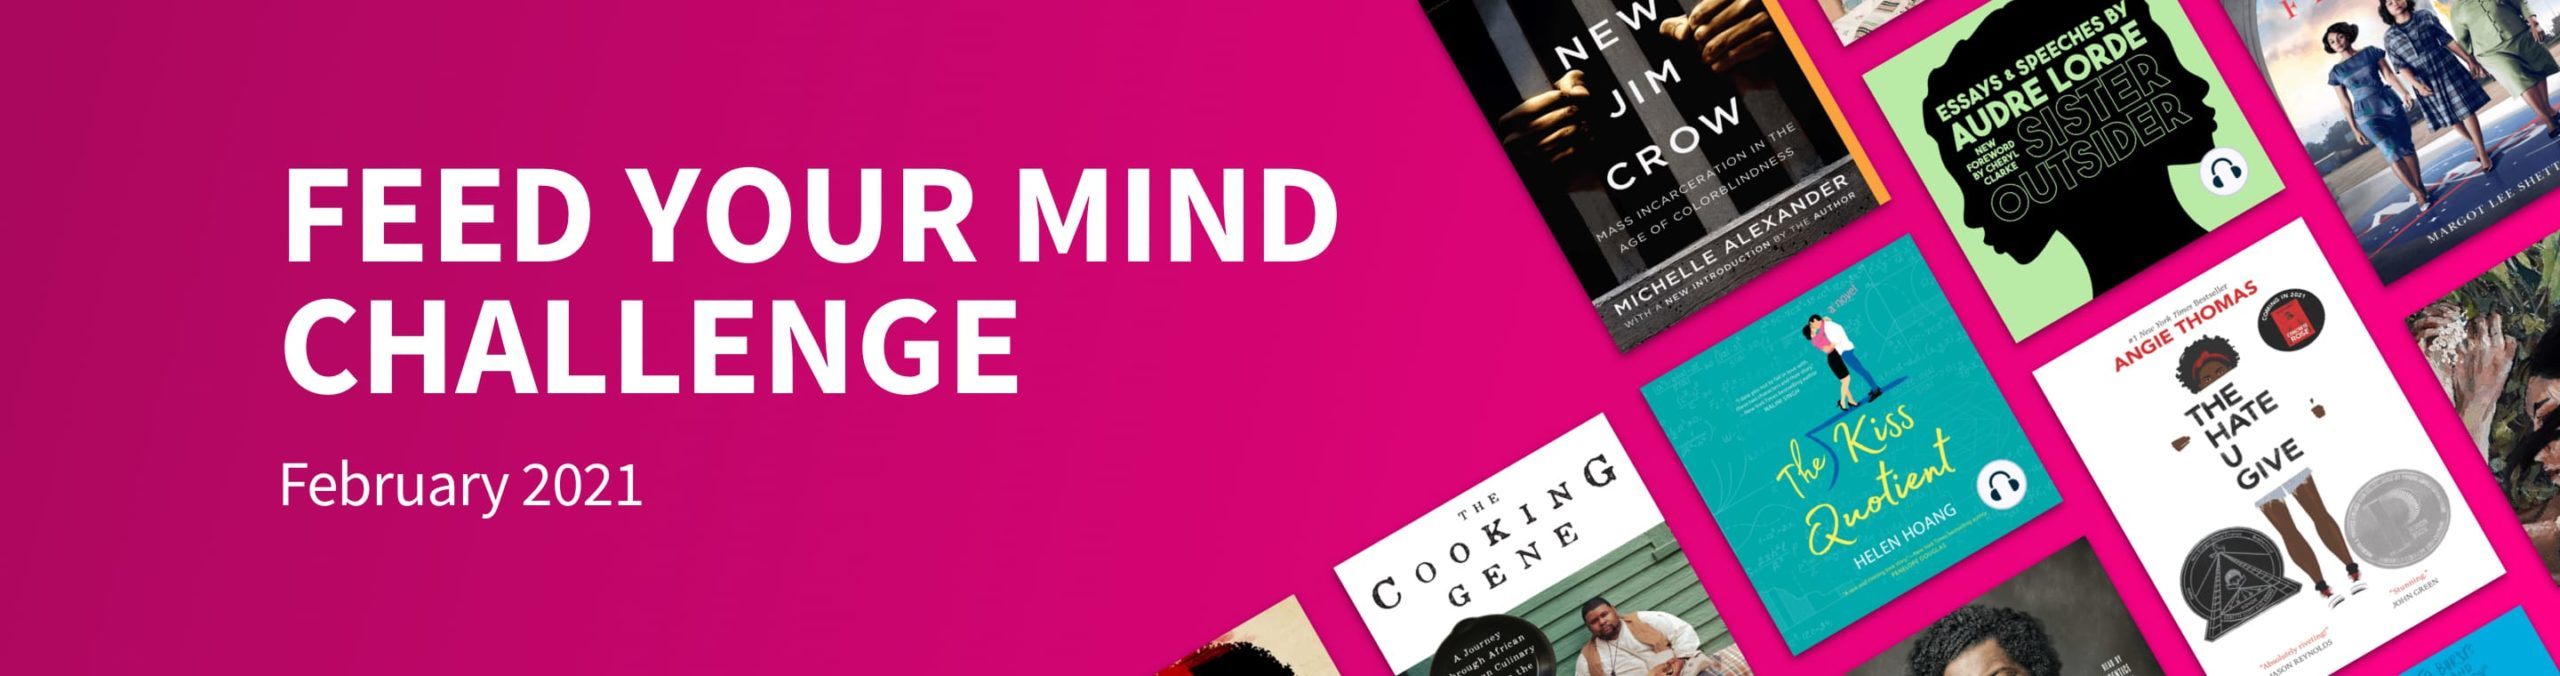 Scribd's February Feed Your Mind Challenge